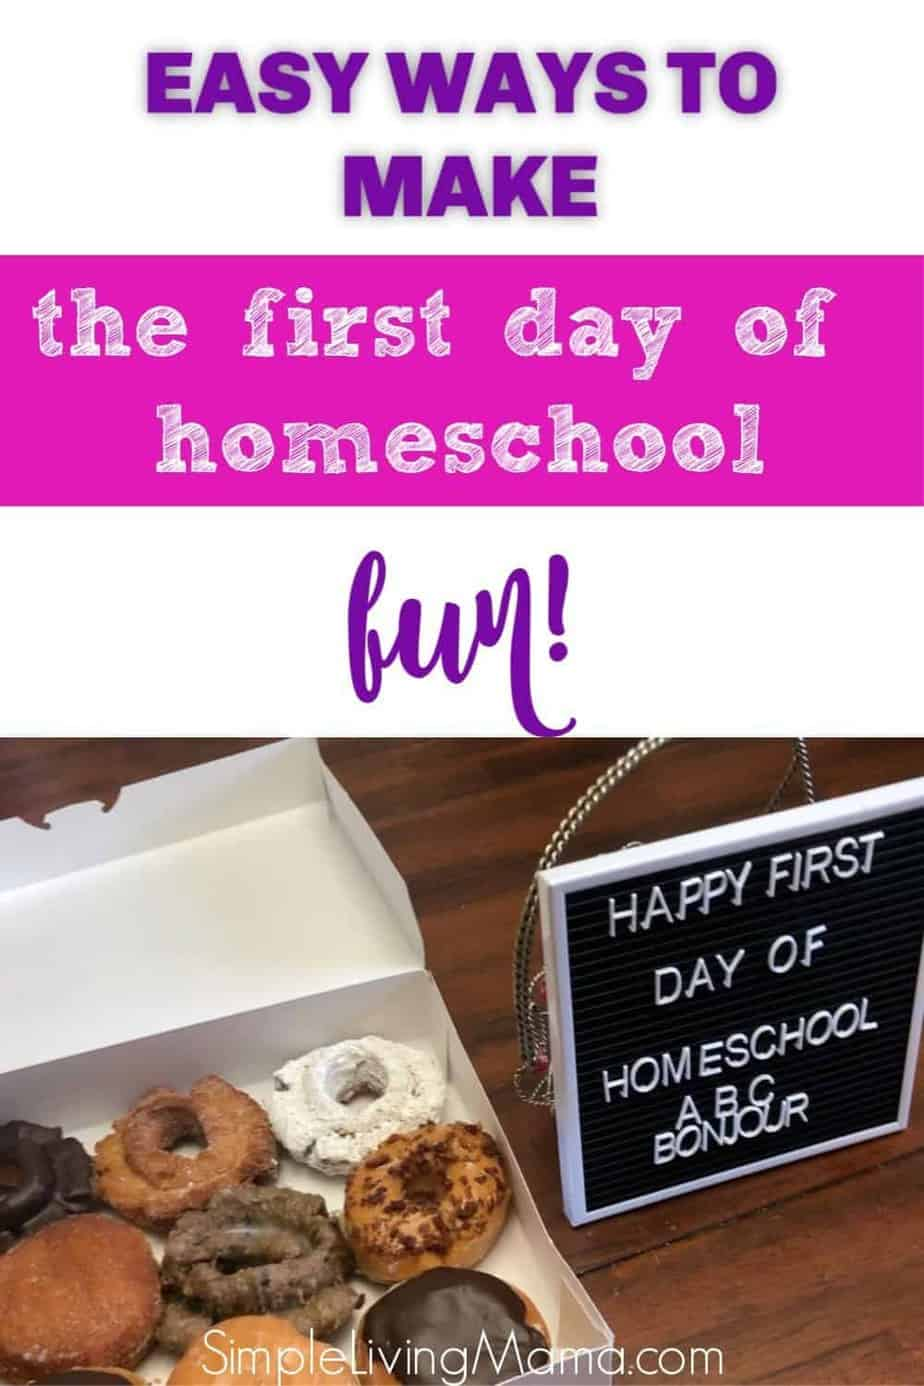 Easy ways to make the first day of homeschool fun!